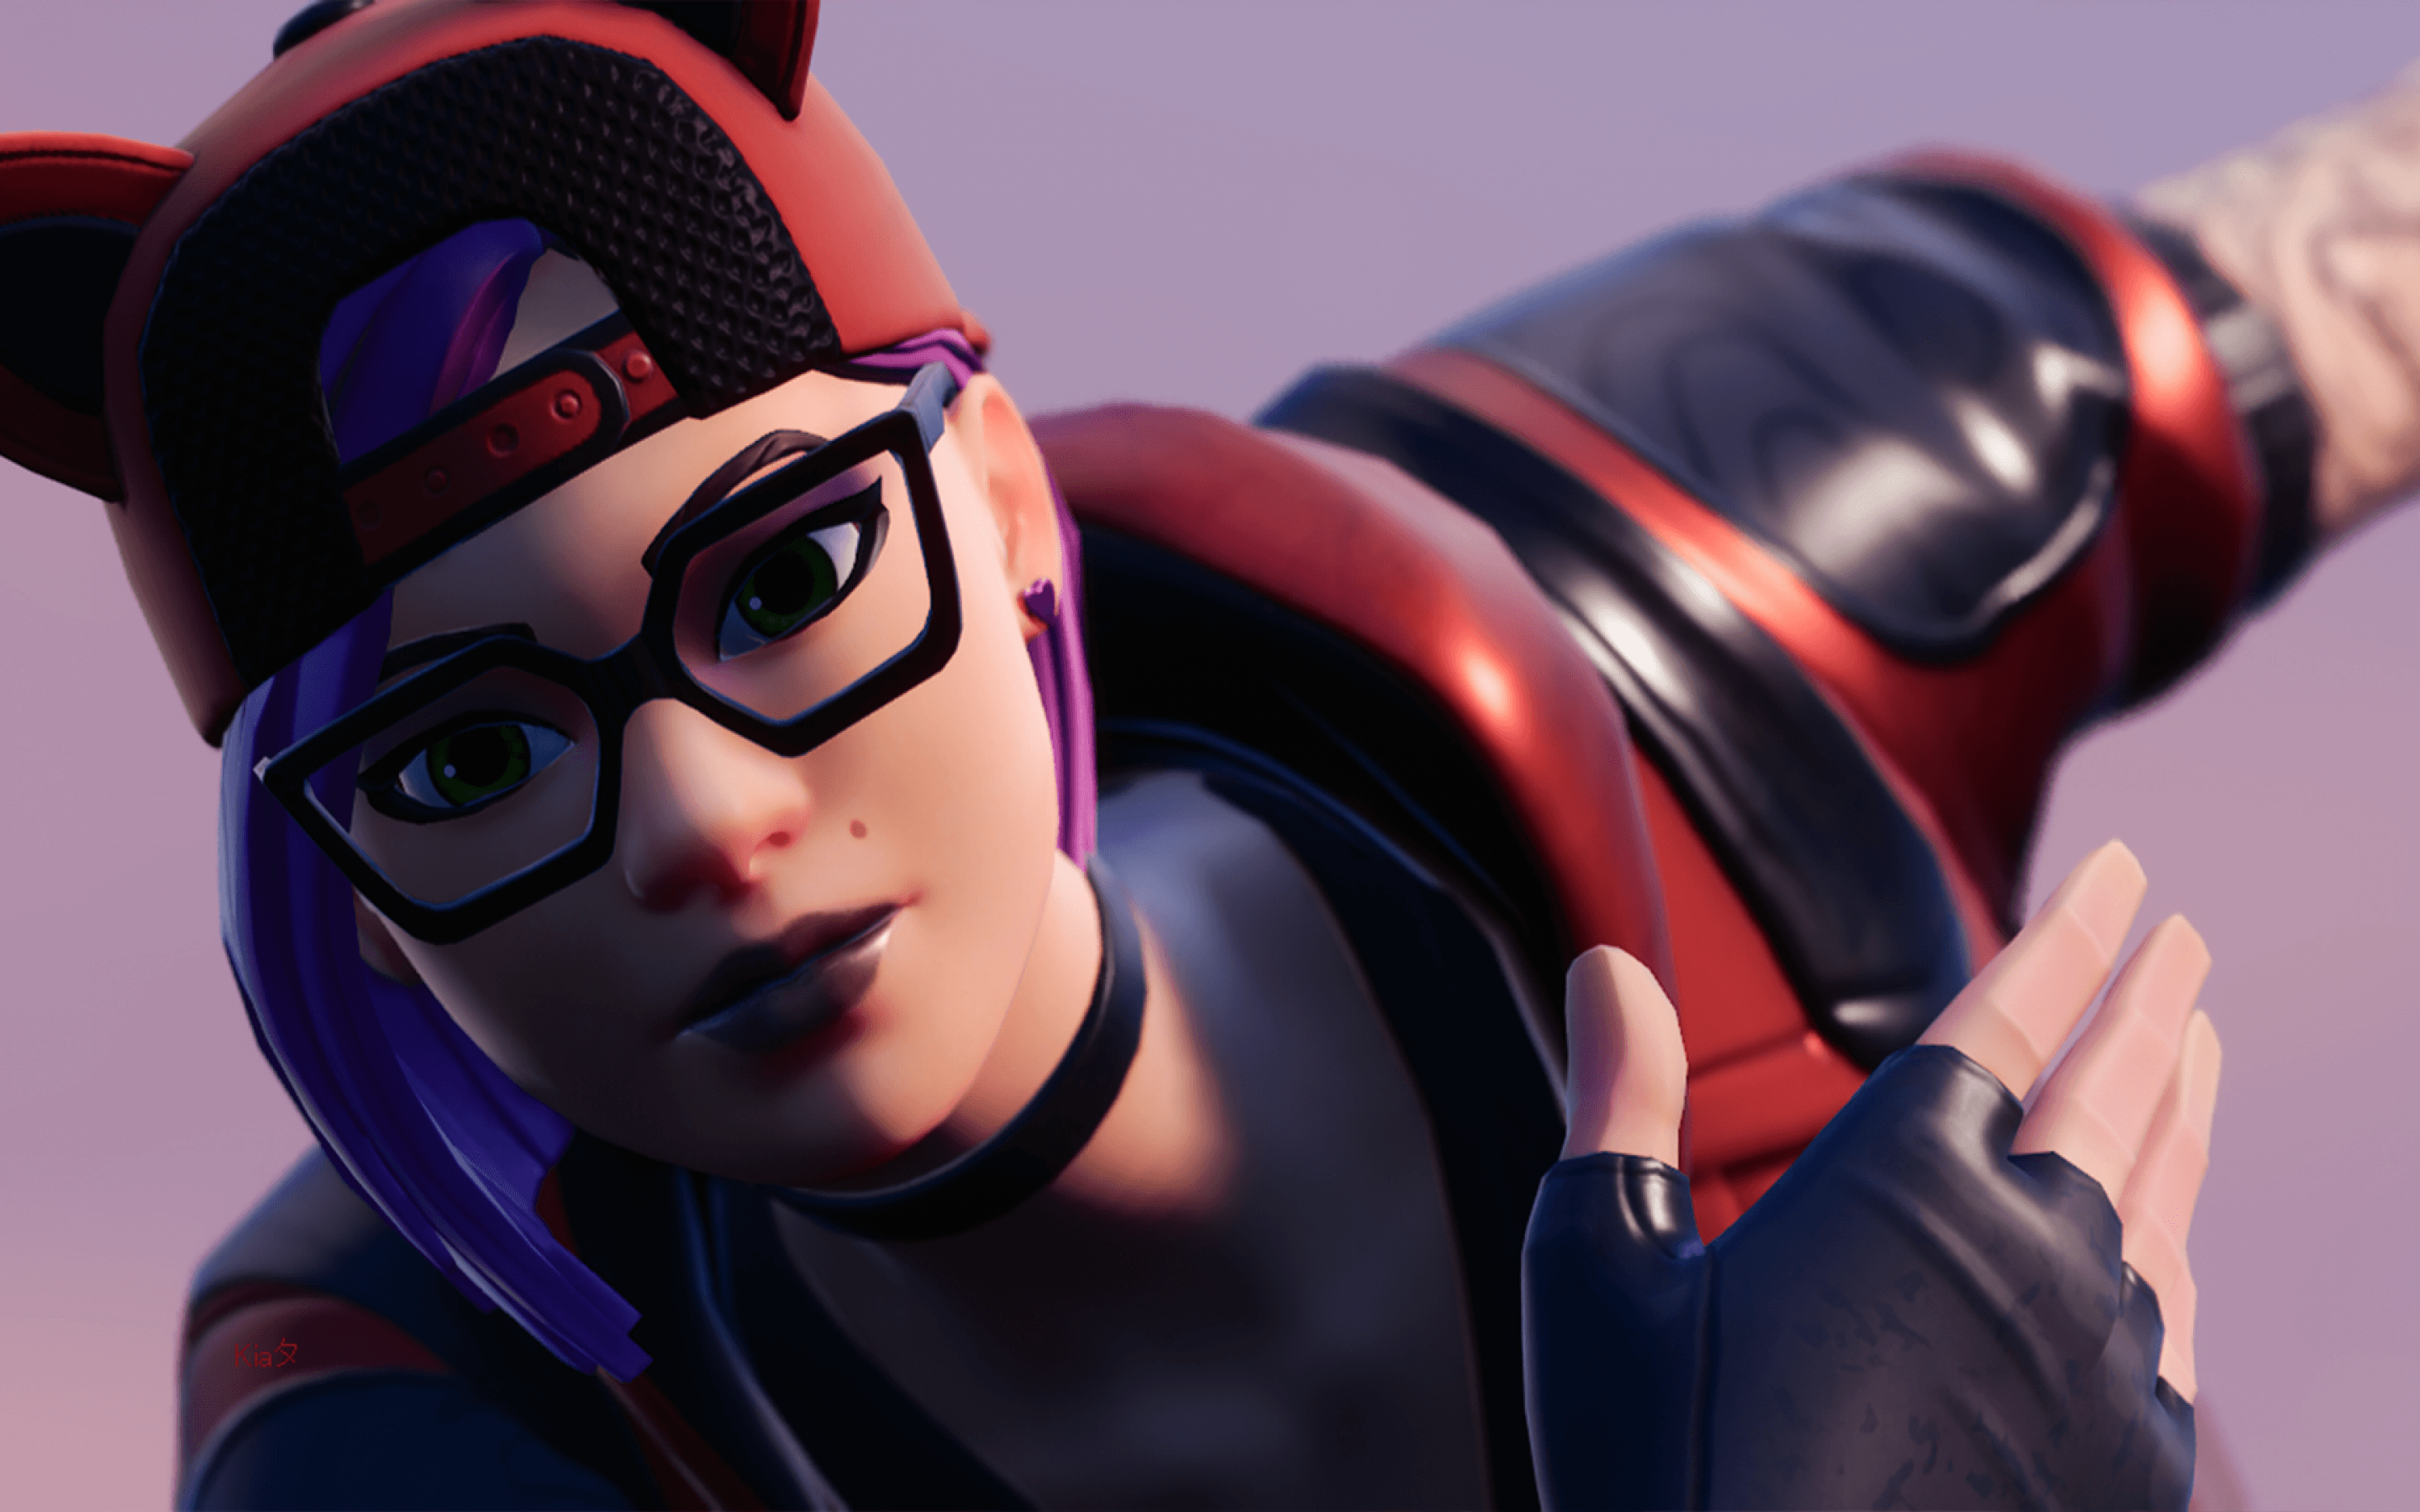 Download 2880x1800 Fortnite, Girl Character, Glasses, Battle Royale ...